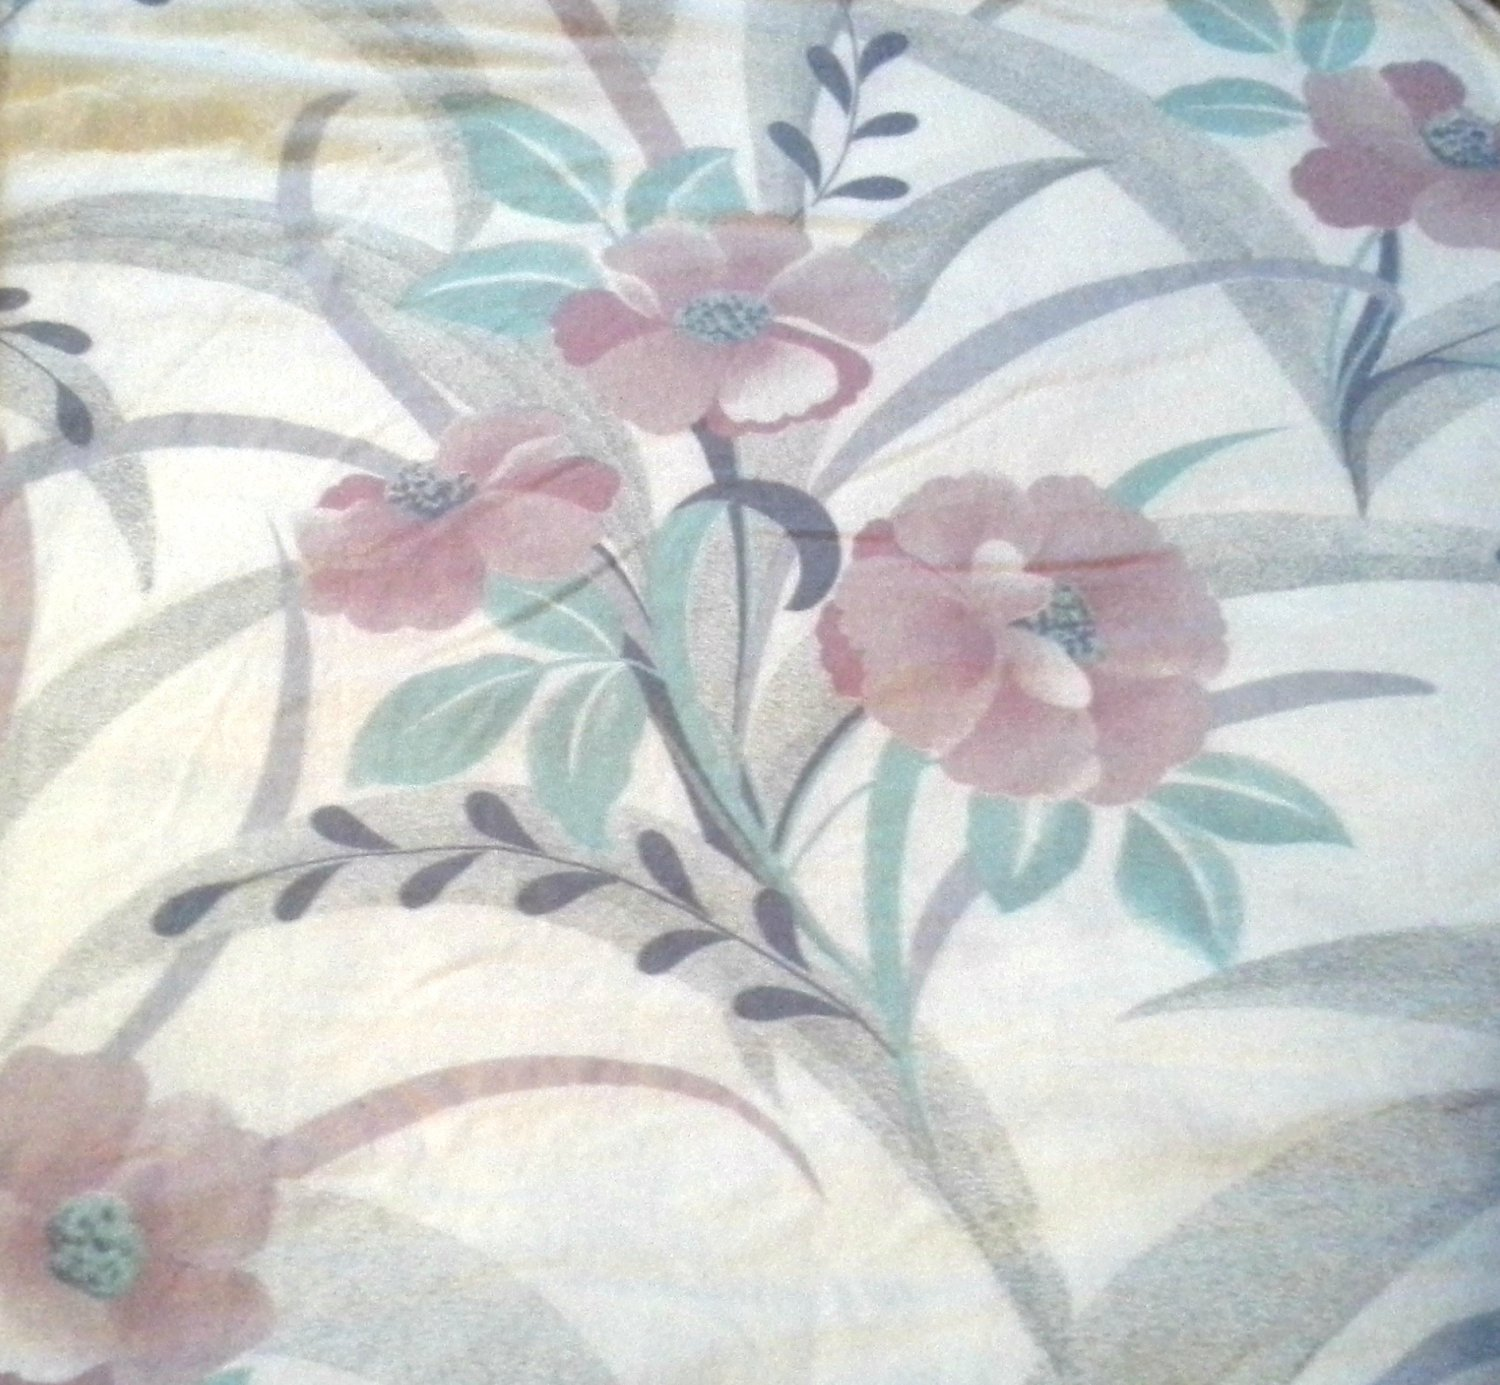 Flannel 100% Cotton Twin Flat Sheet Mauve Pink Green White Gray Floral for use or cutter